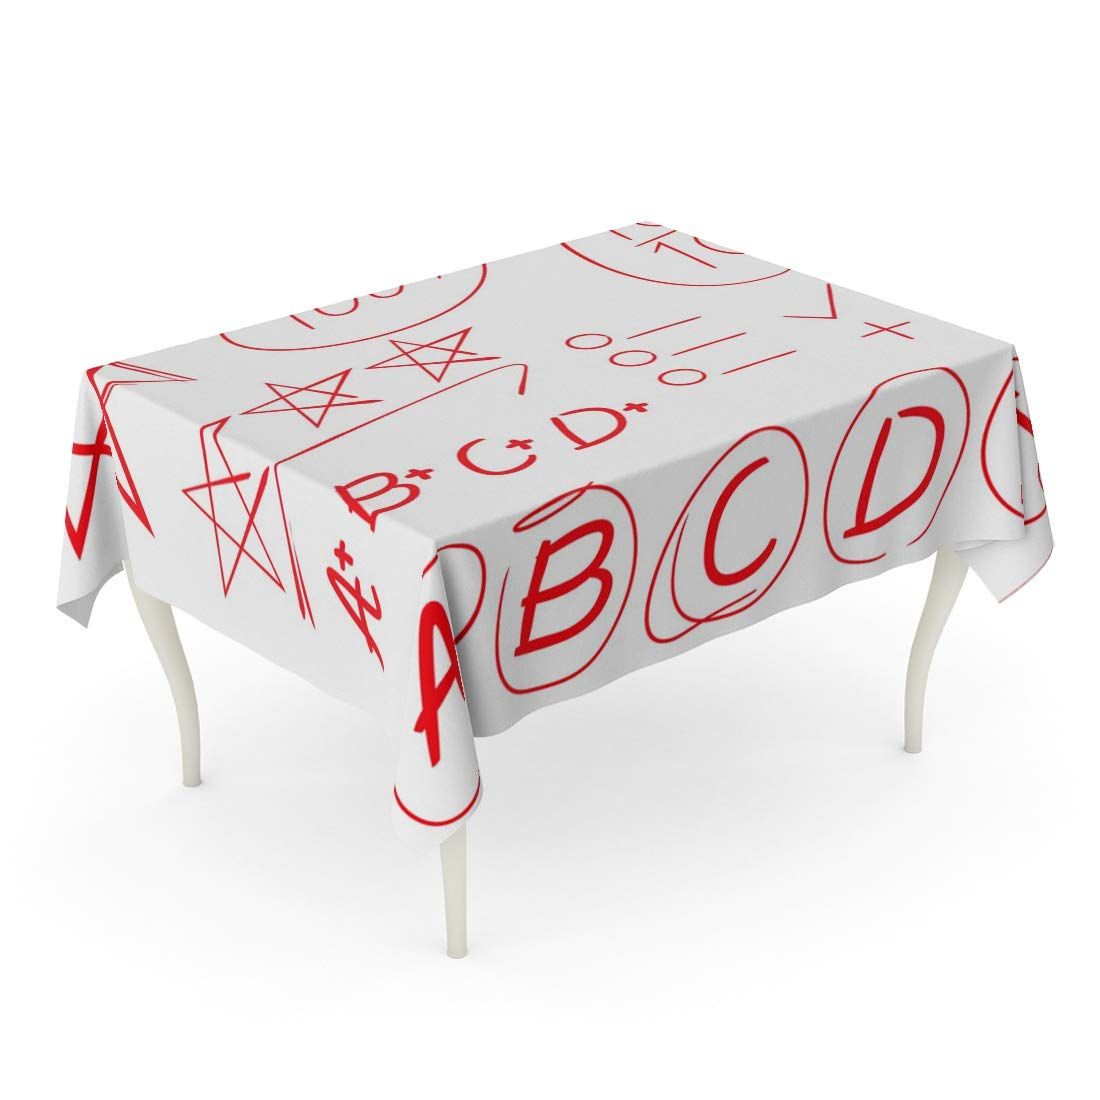 Tarolo Rectangle Tablecloth 60 x 84 Inch Red Homework Score Full Marks Grade Star Symbol Highlighter Emphasis Pen Test Marker Exam Table Cloth